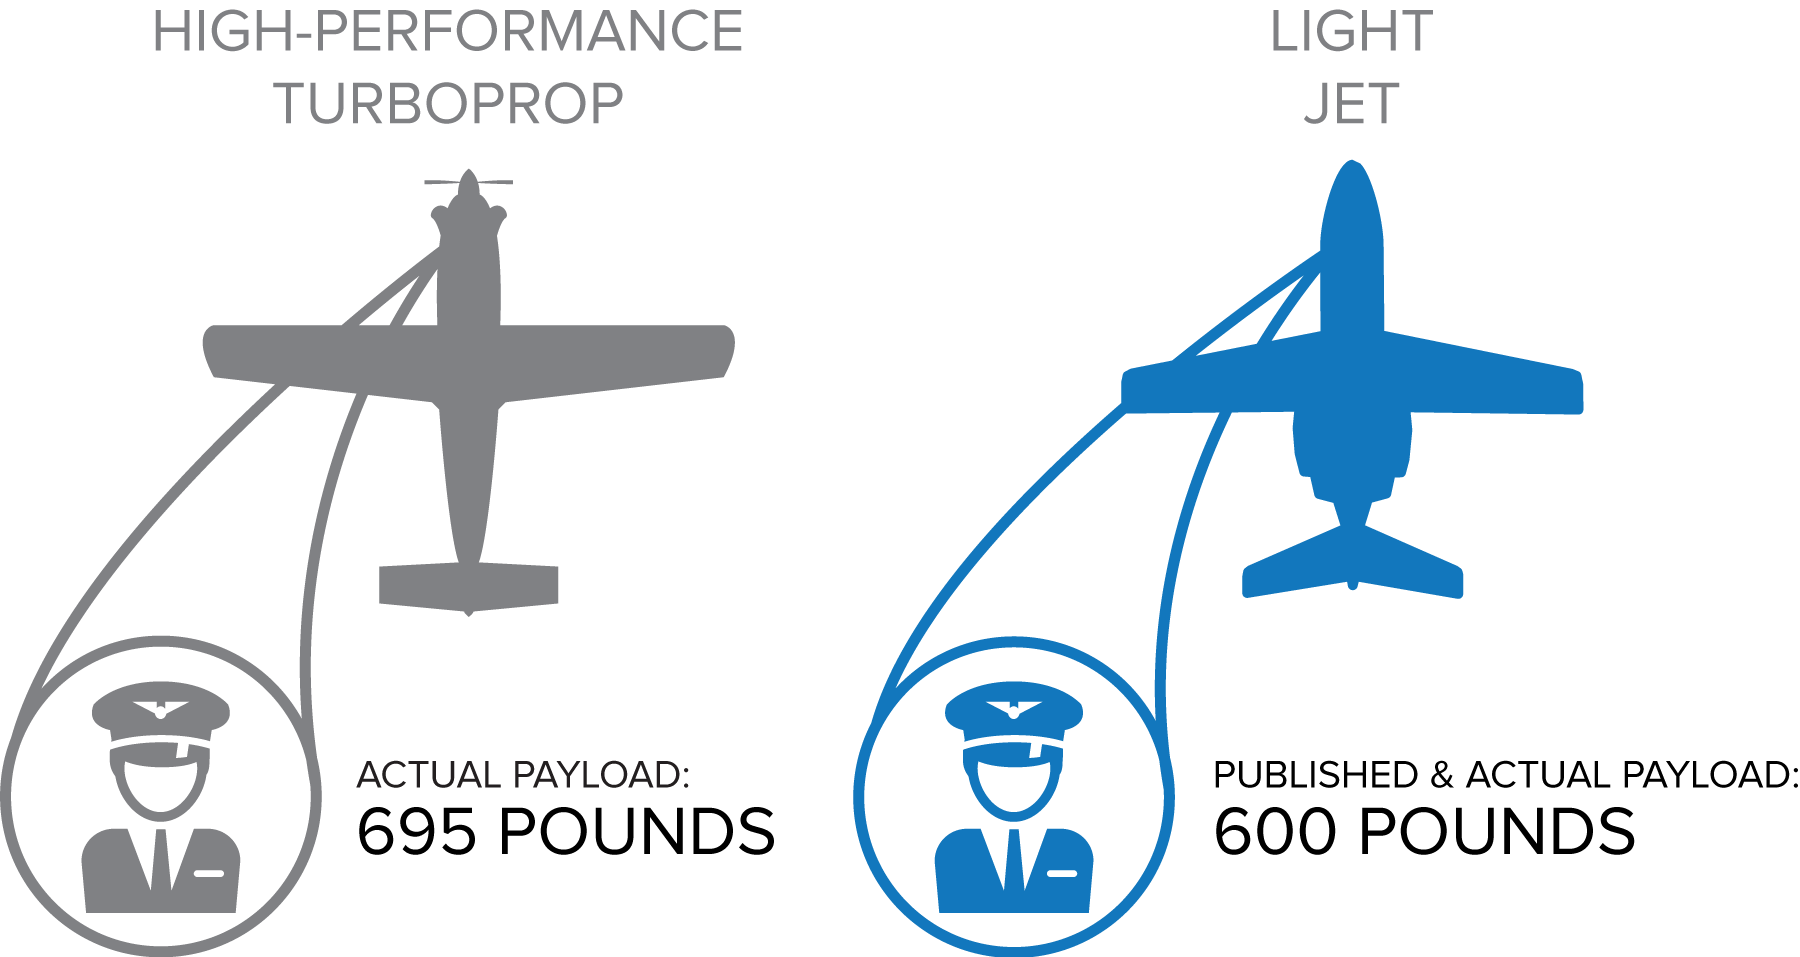 High-performance turboprops vs  light jets